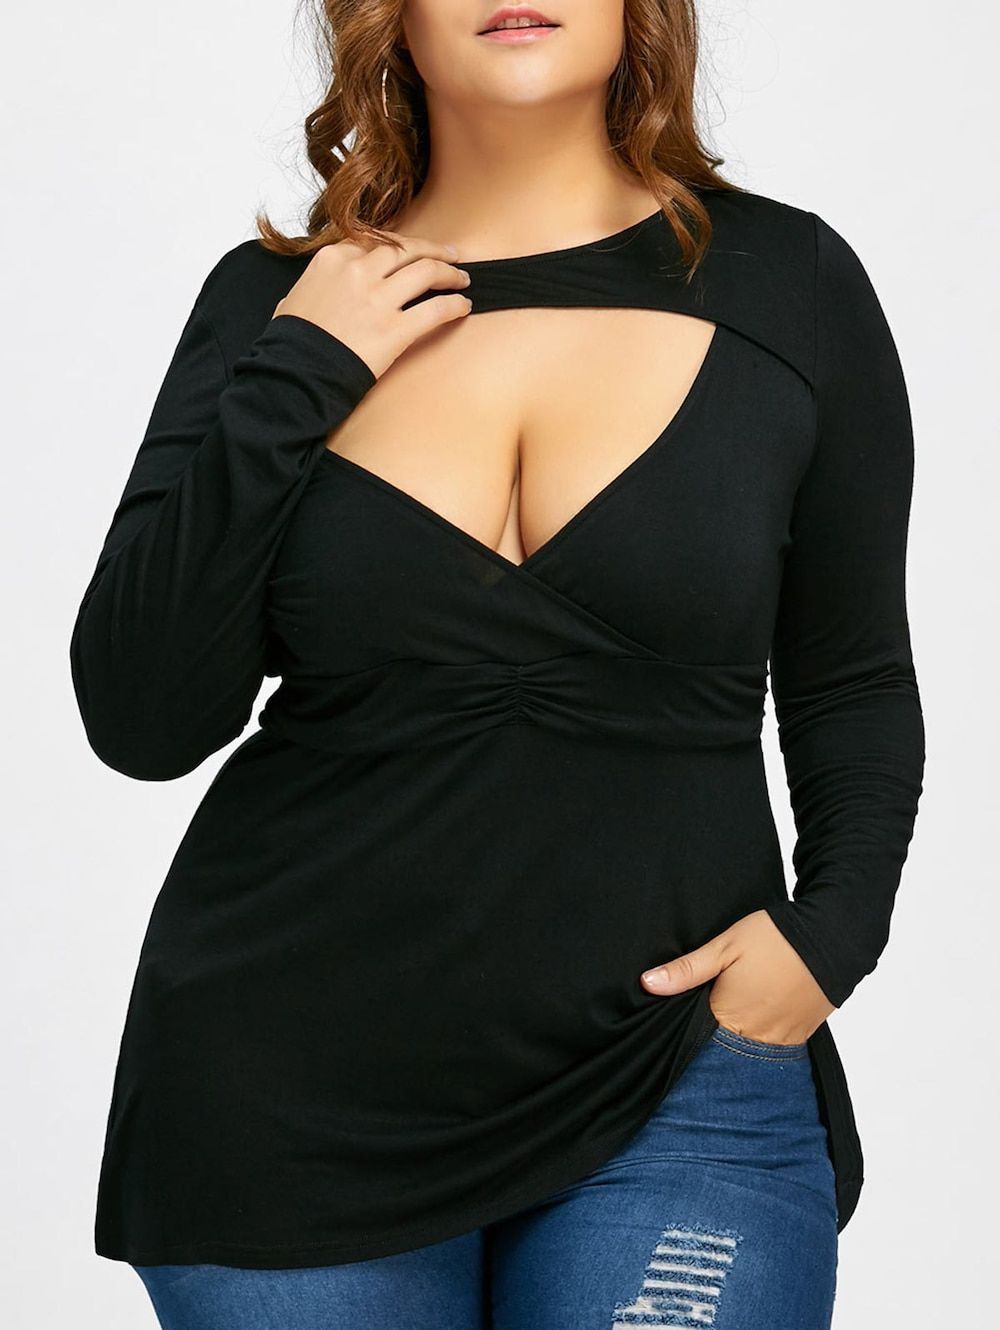 c923500c Long Sleeve Plus Size Cut Out T-shirt, BLACK, XL in Plus Size T-shirts |  DressLily.com